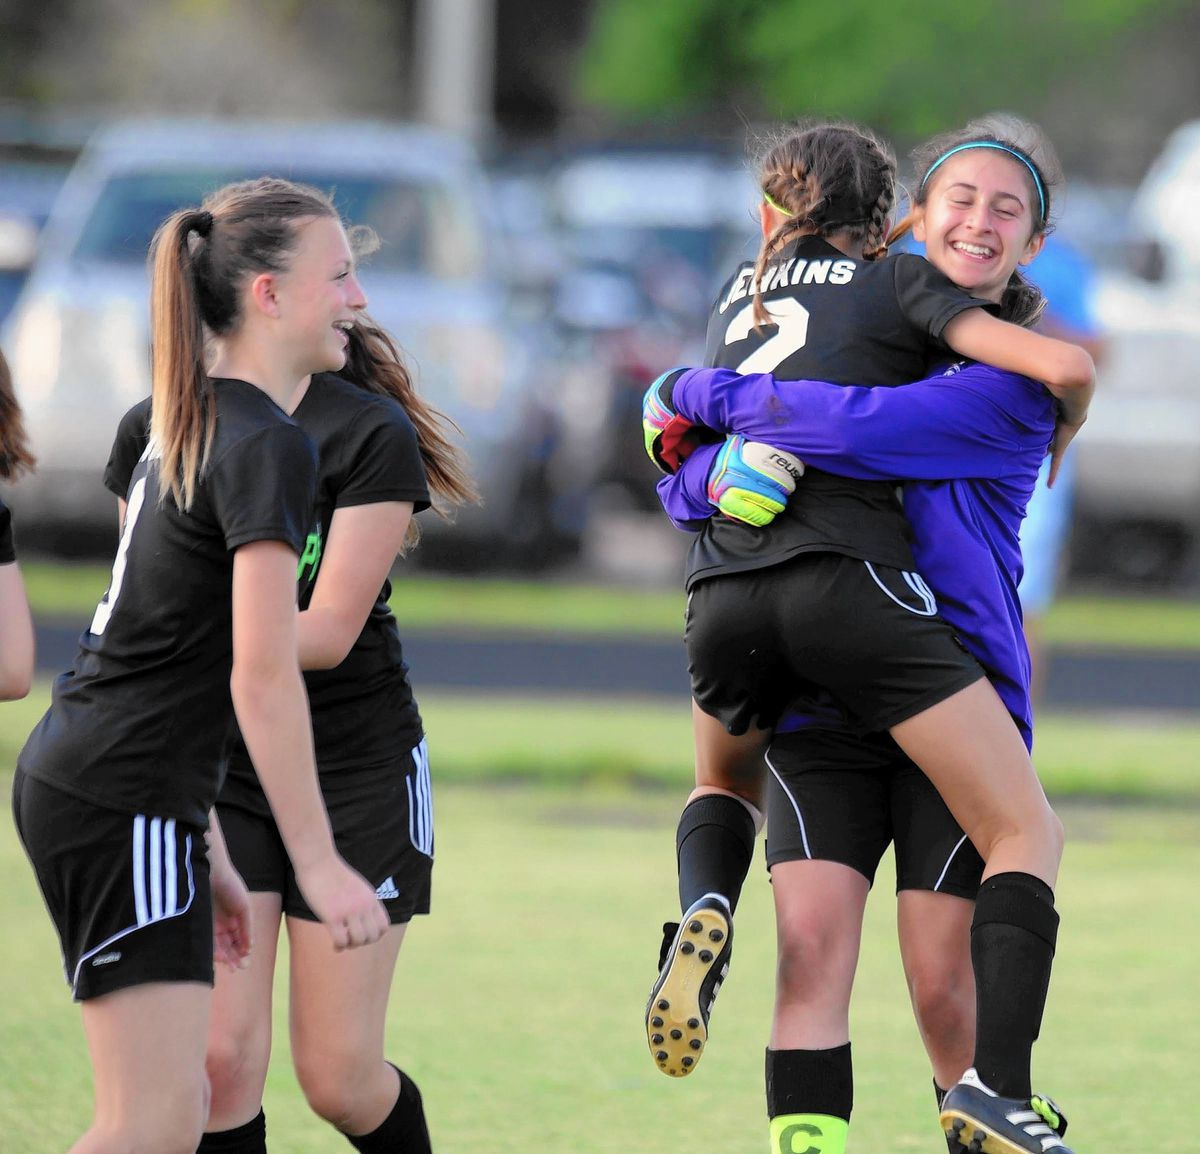 Emerald Cove Girls Soccer Team Wins County Middle School